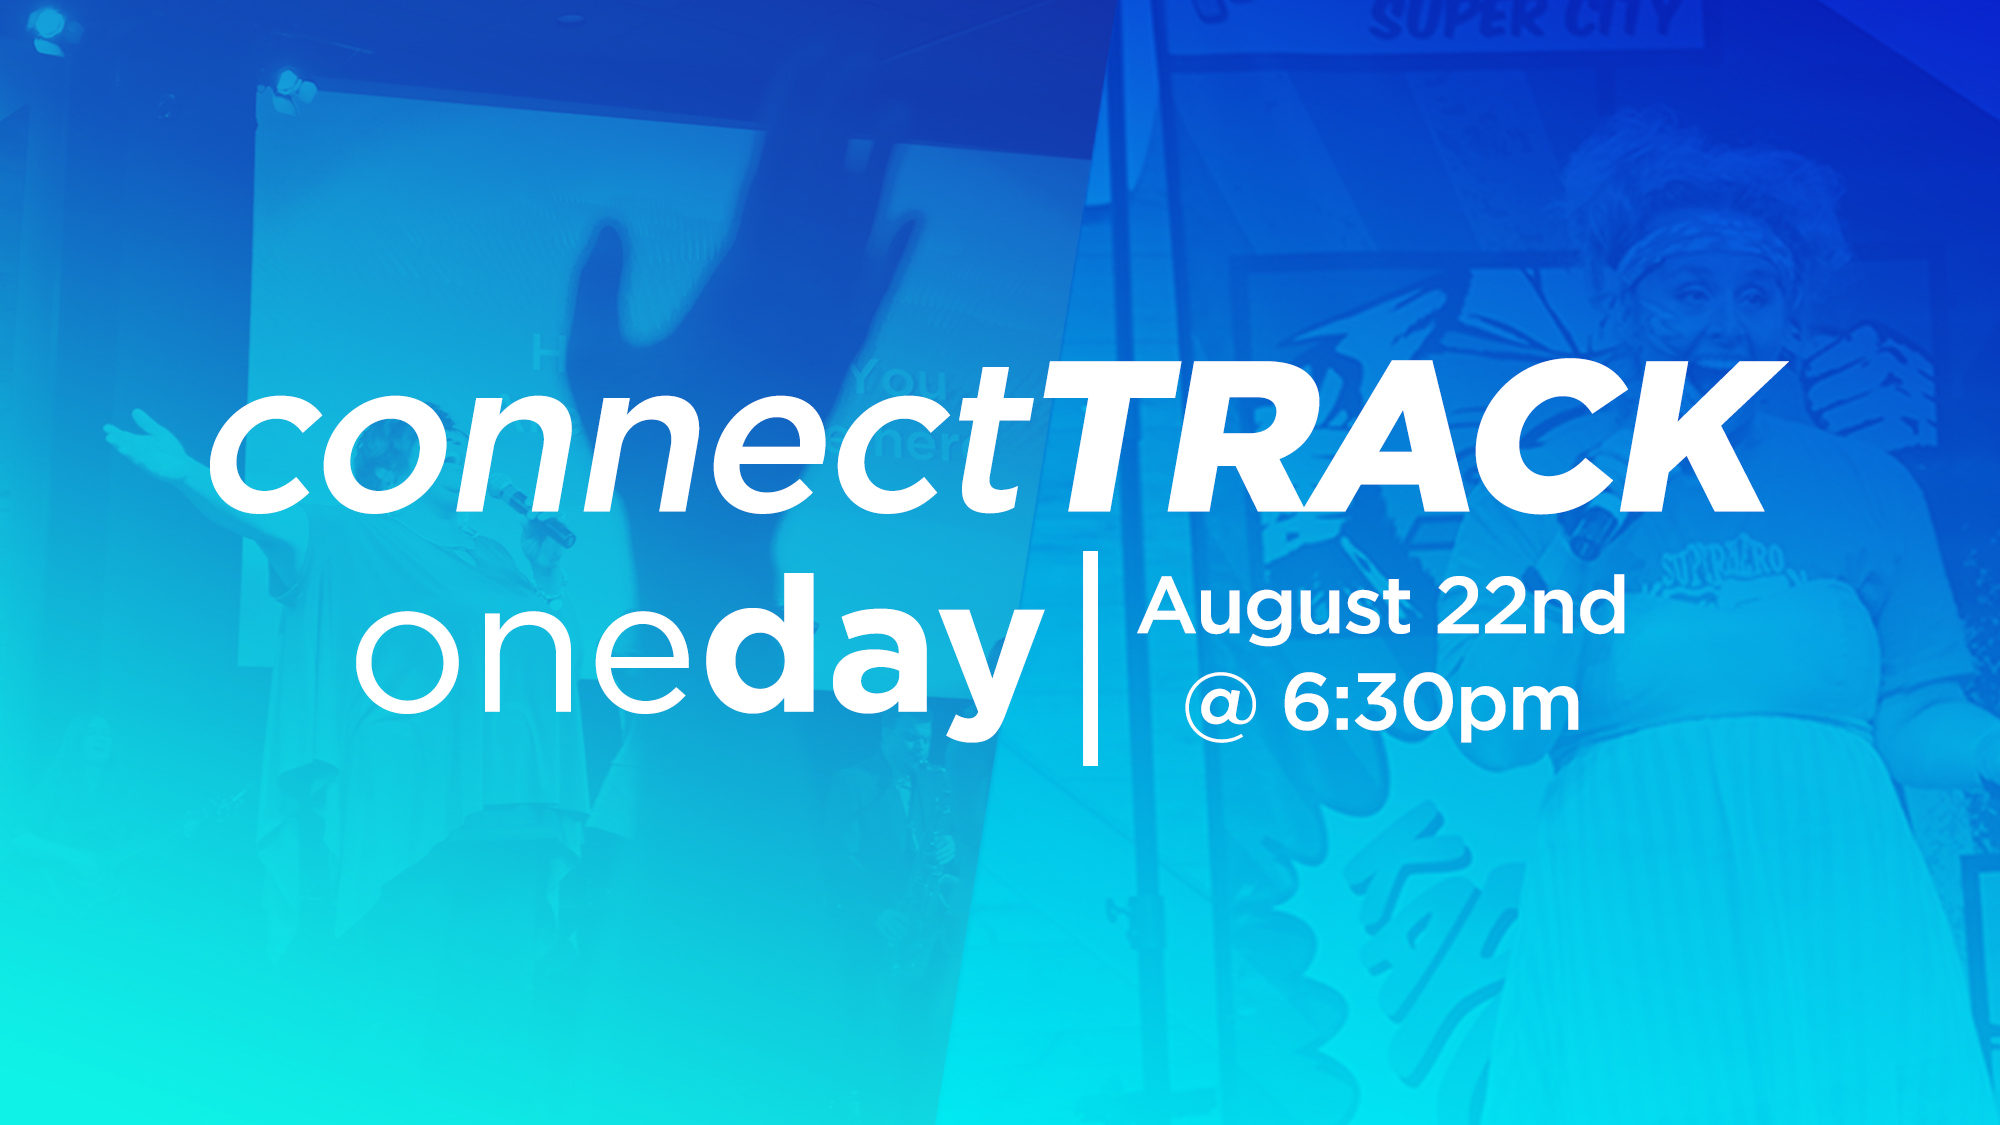 Connect Track_One Day.jpg